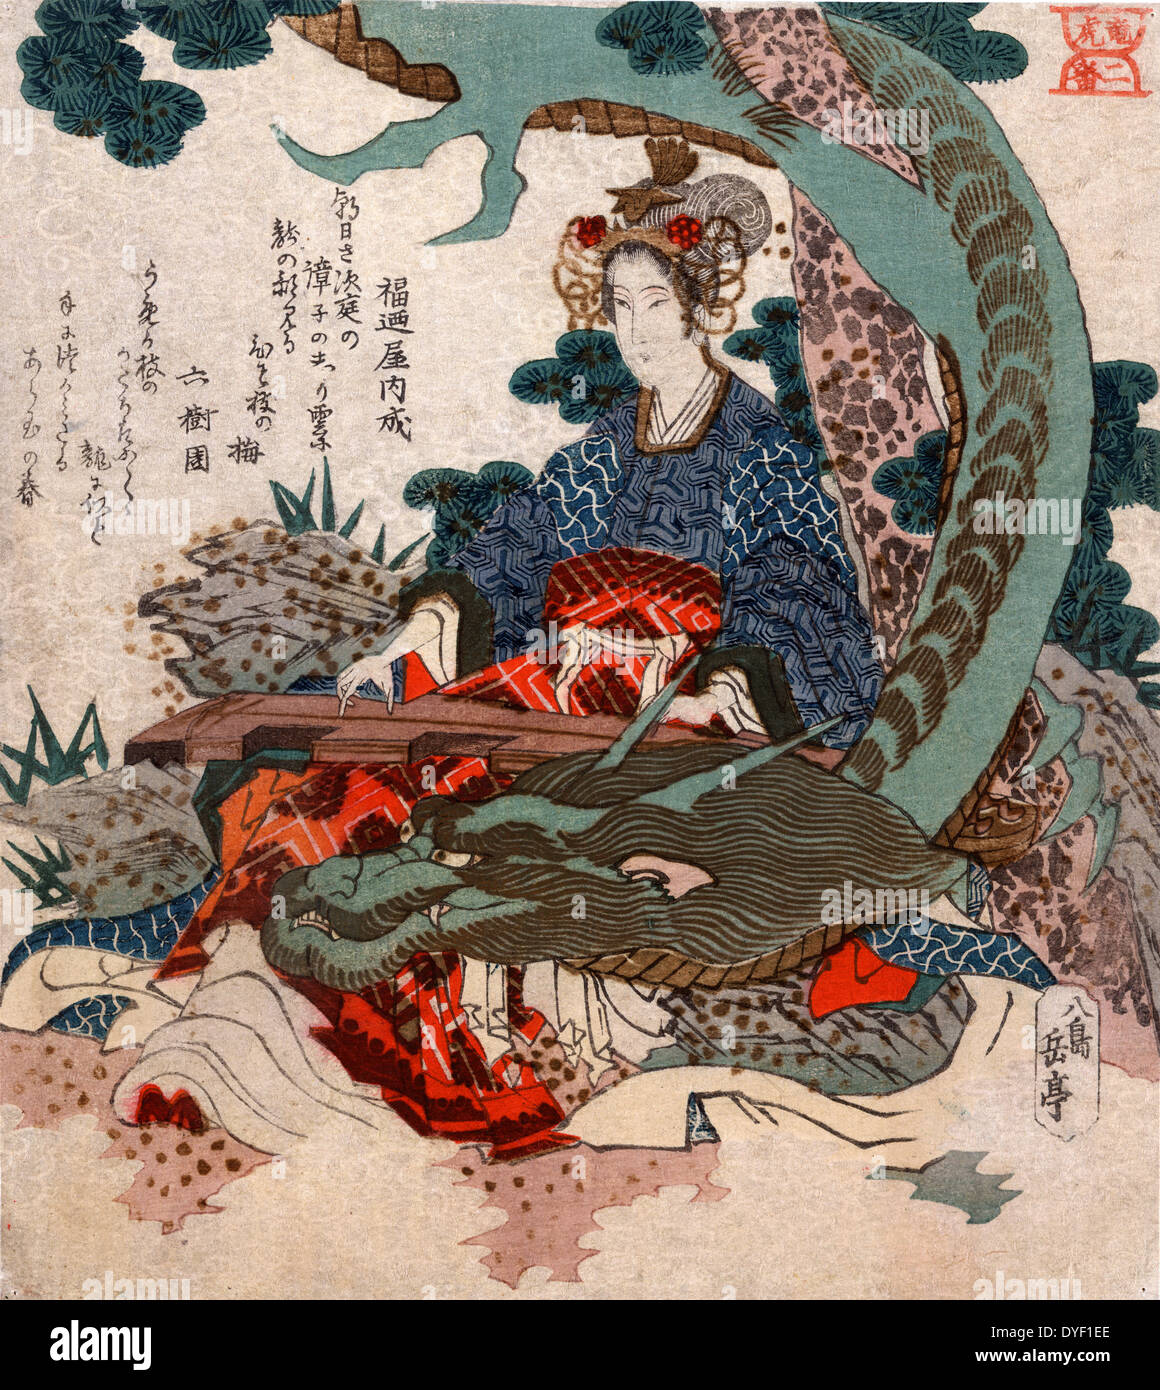 Whalers in action wood engraving published in 1855 stock illustration - Ryu Ko Niban Tiger And Dragon No 2 By Gogaku Yajima Active 19th